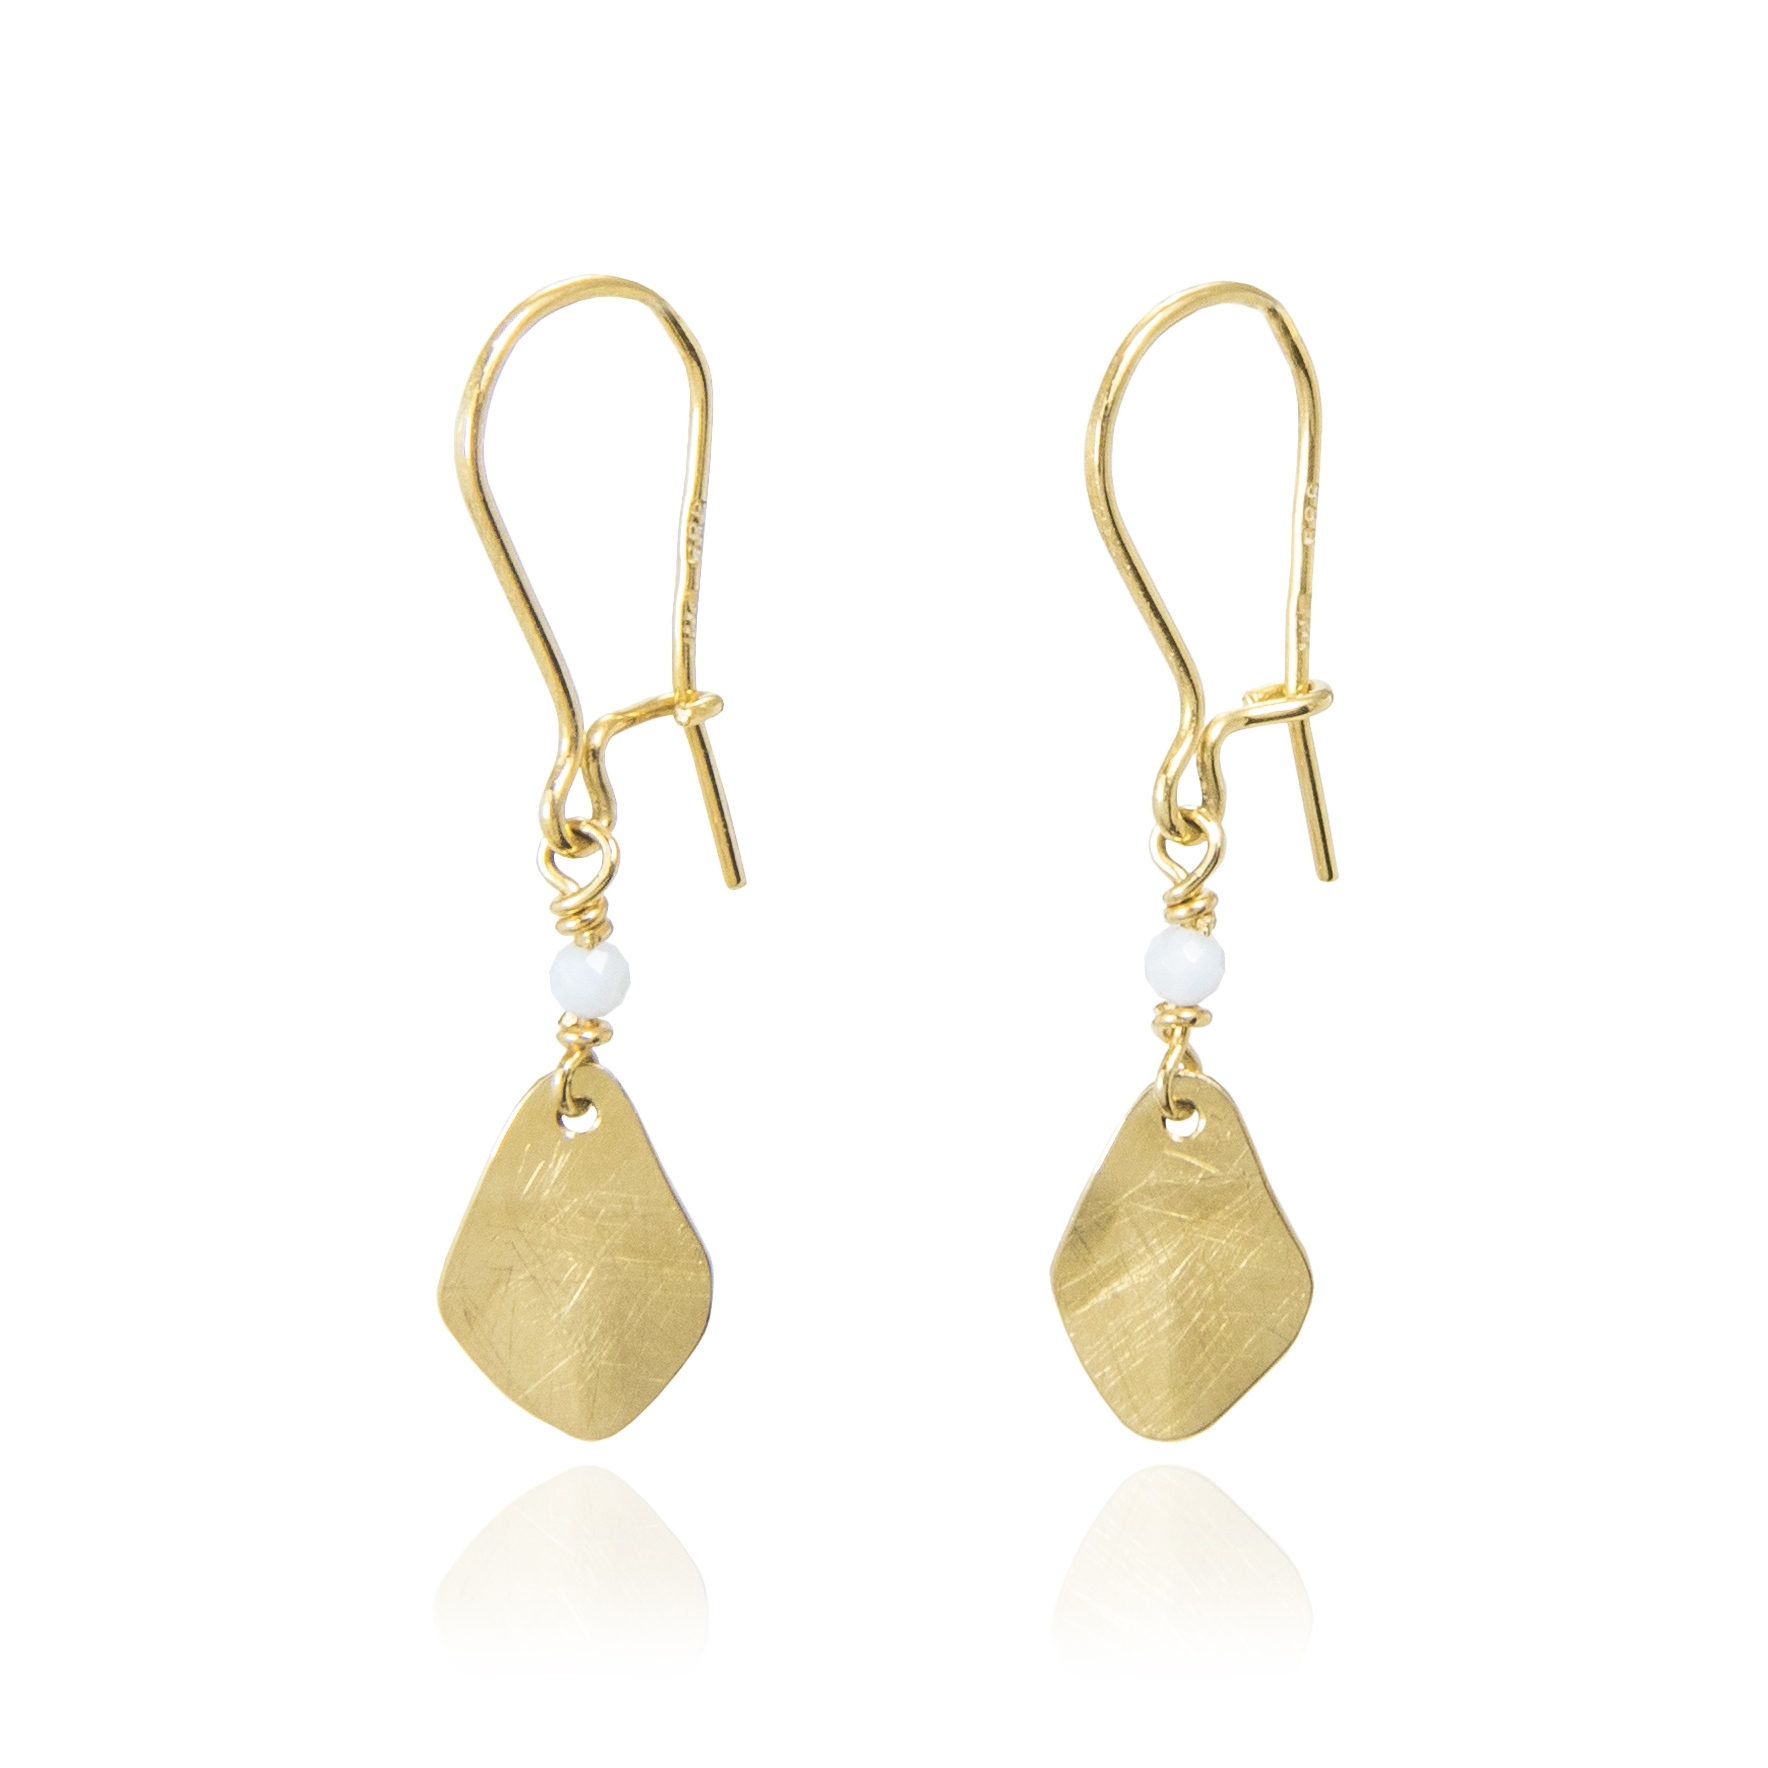 Trembling shine earrings with chalcedony